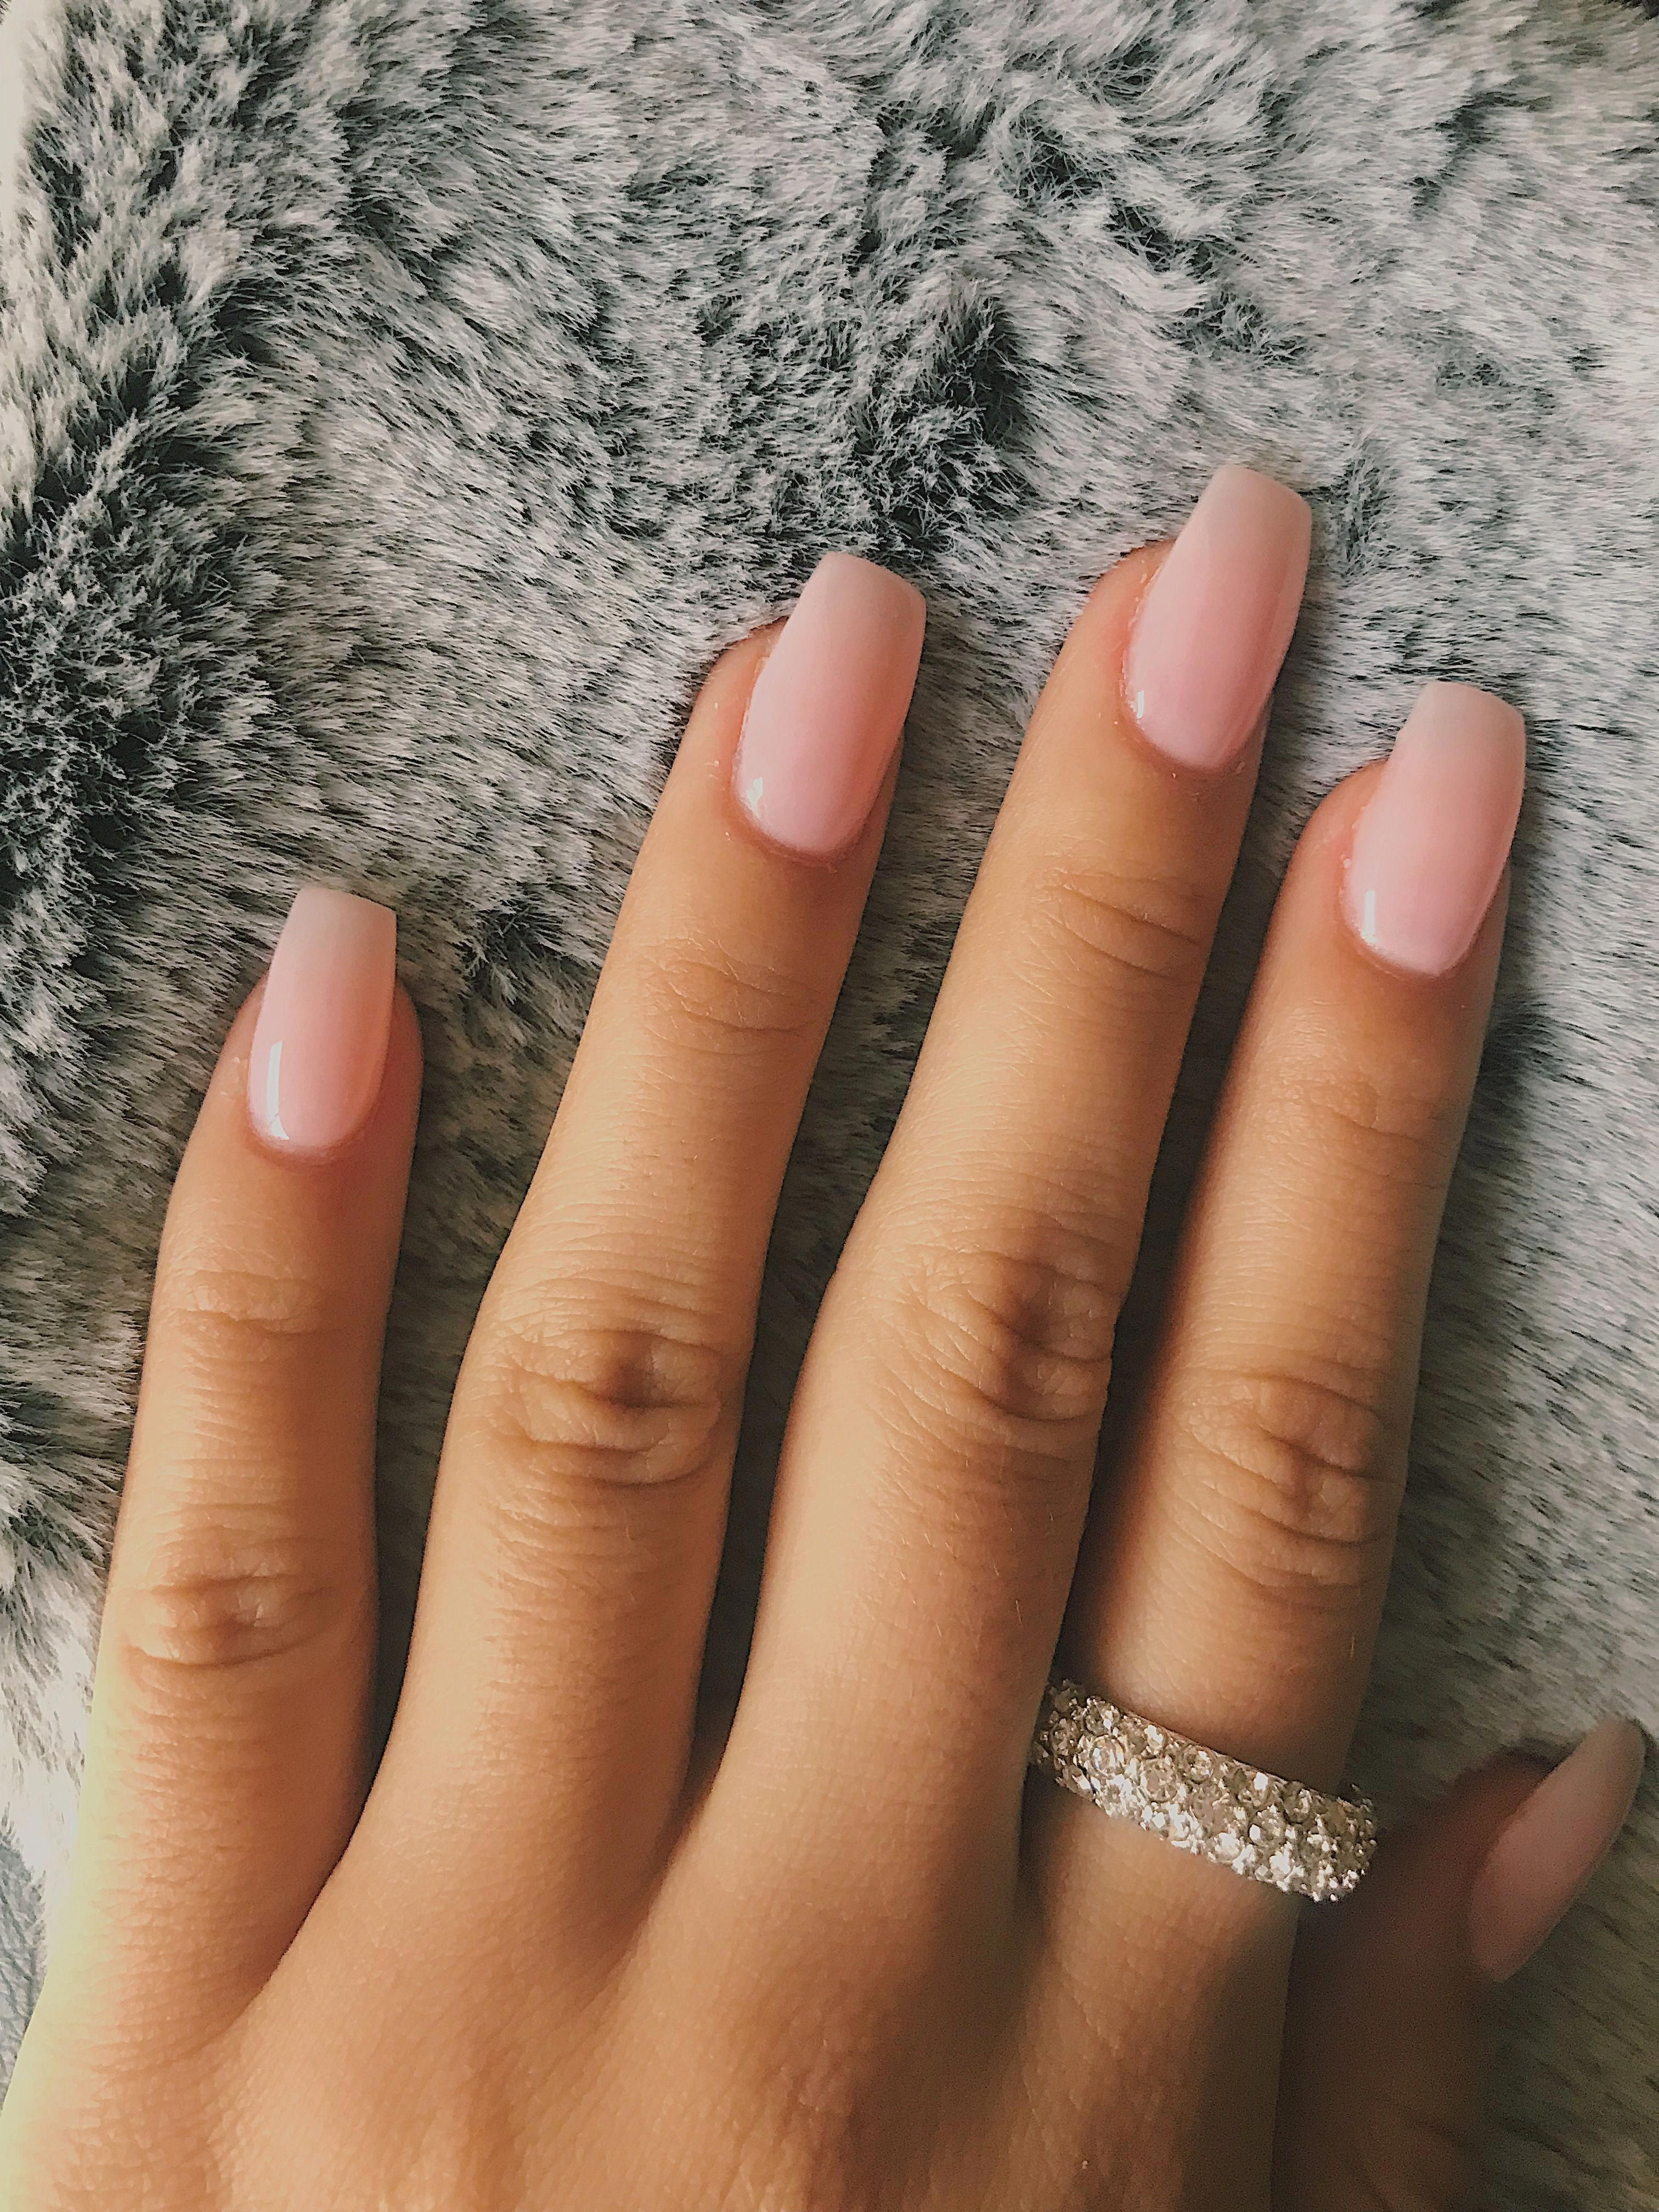 Nails For Red Dress : nails, dress, Summer, Happy, Sunshine, Little, Dress, Outfit, Daytime, Exercise, Green, Prett…, Blush, Nails,, Short, Acrylic, Nails